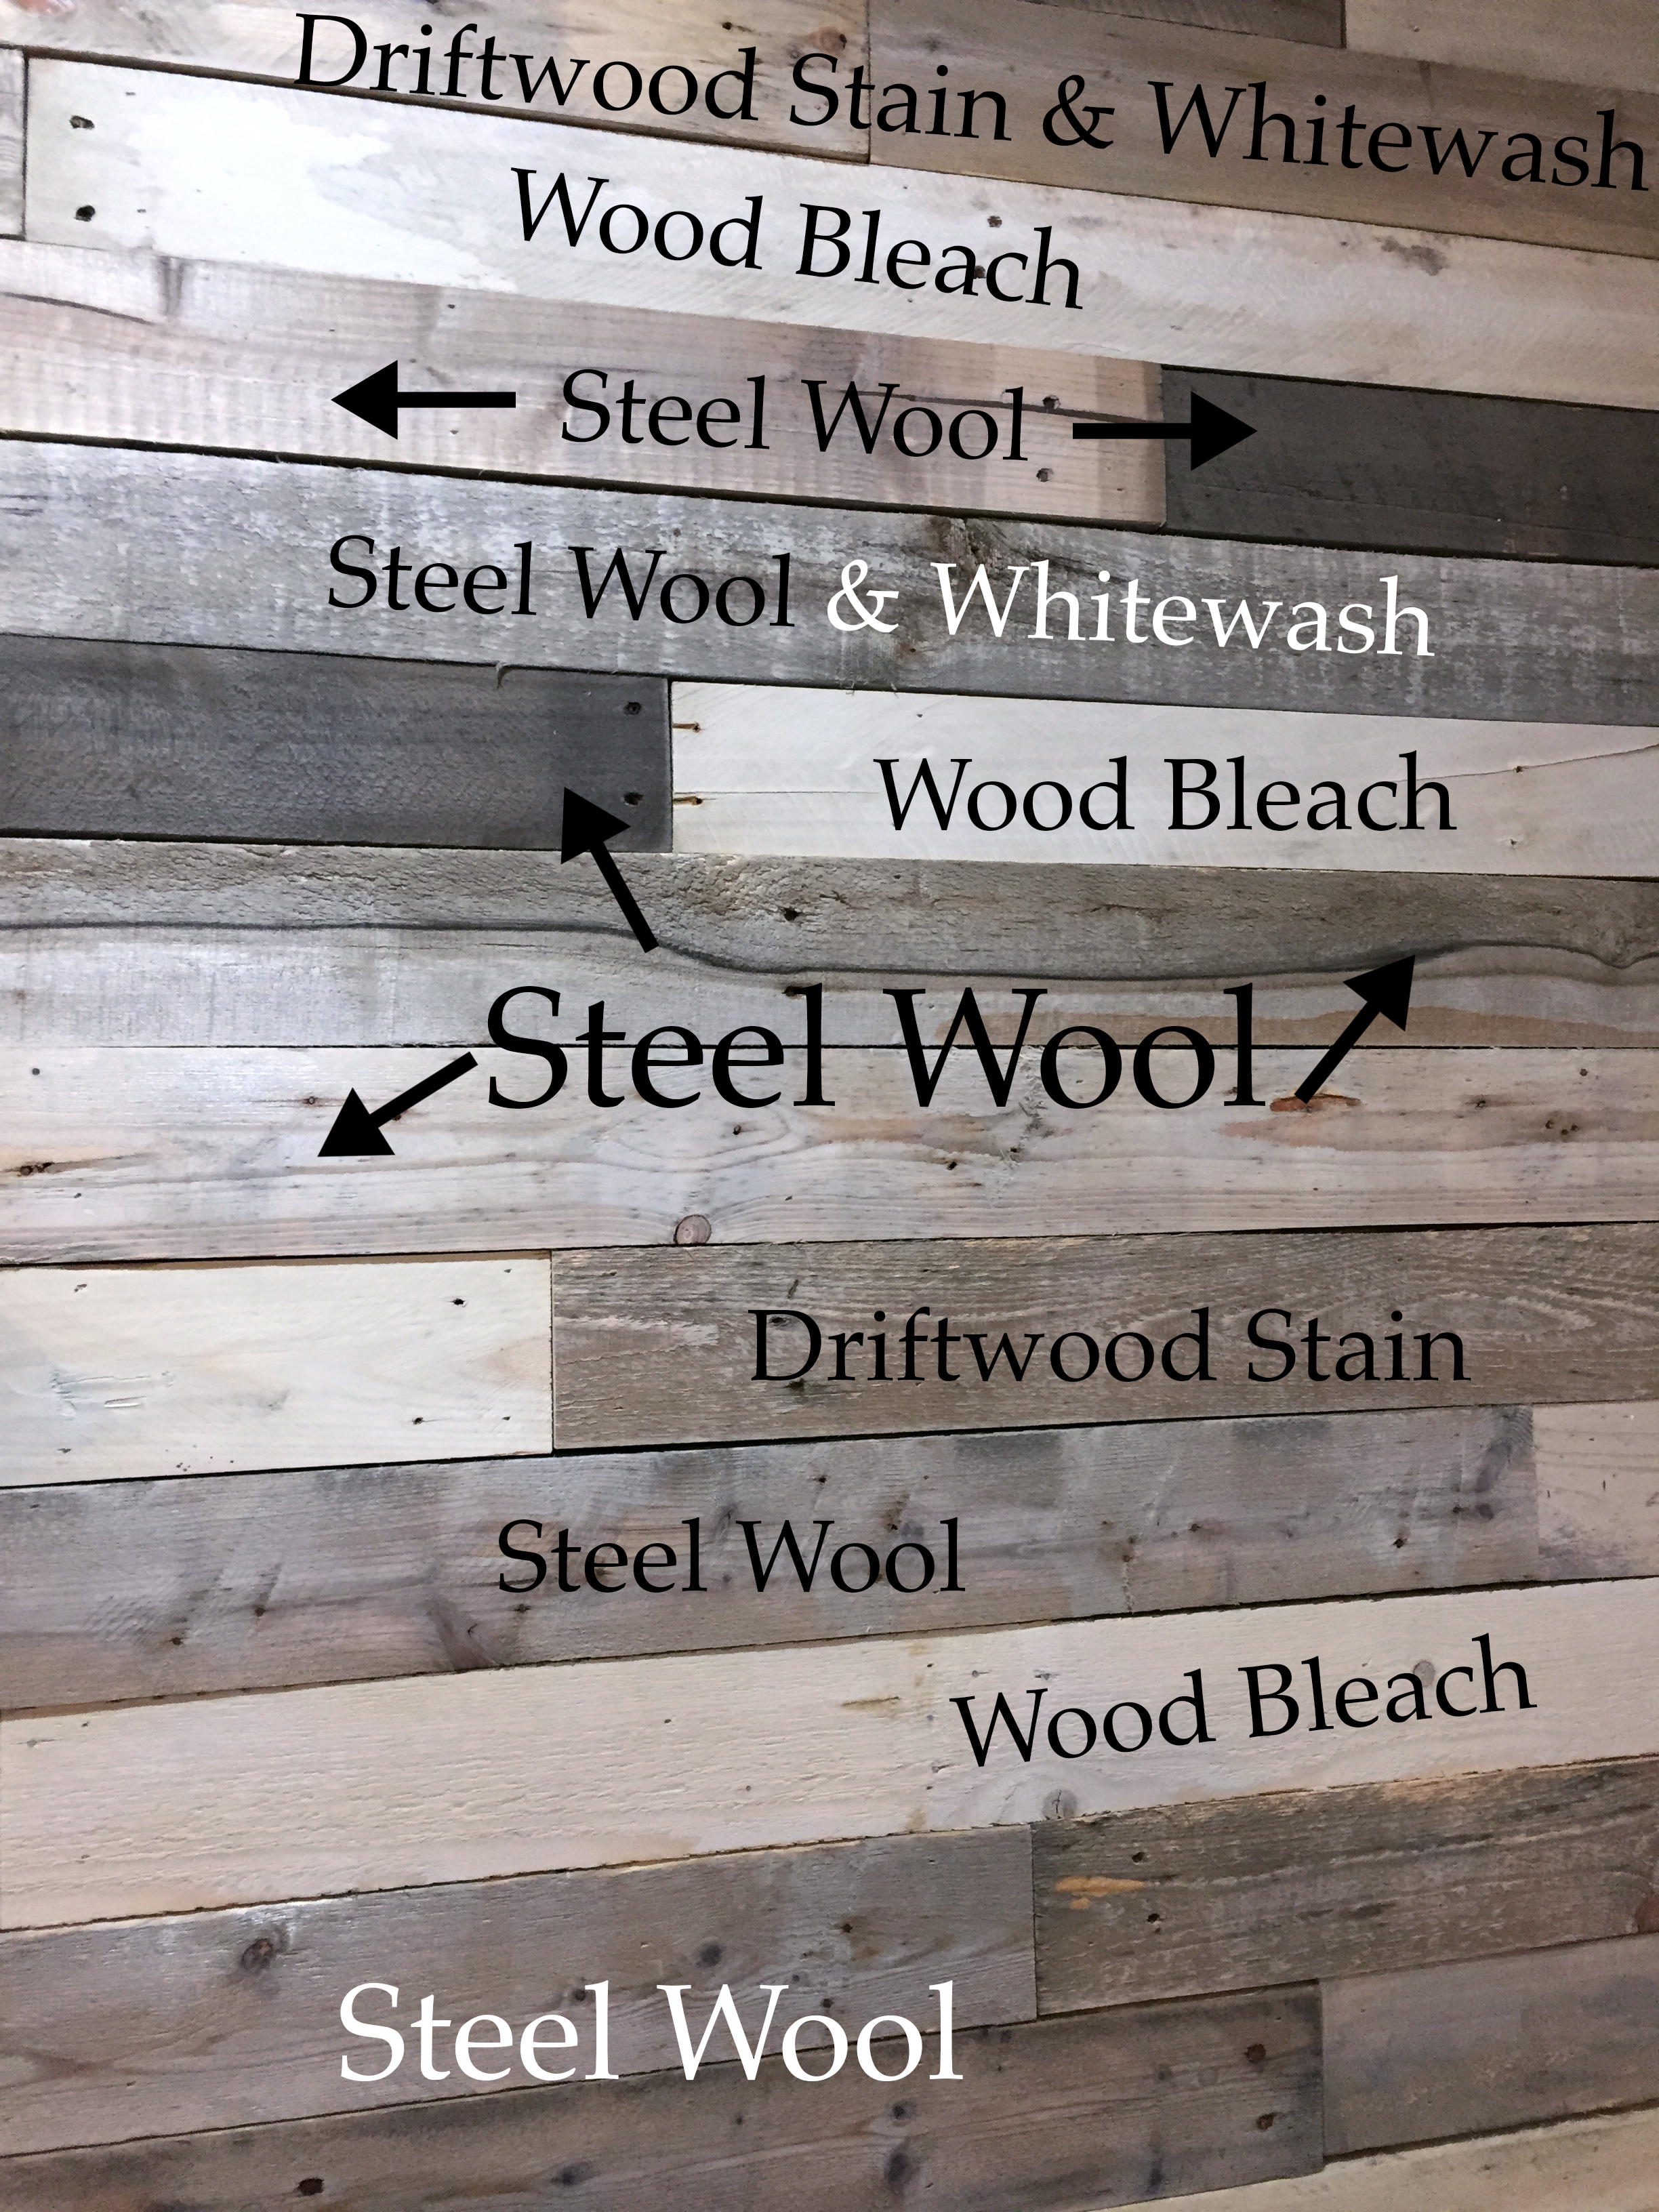 DIY - How To Build A Wood Pallet Wall - The Kelly Homestead